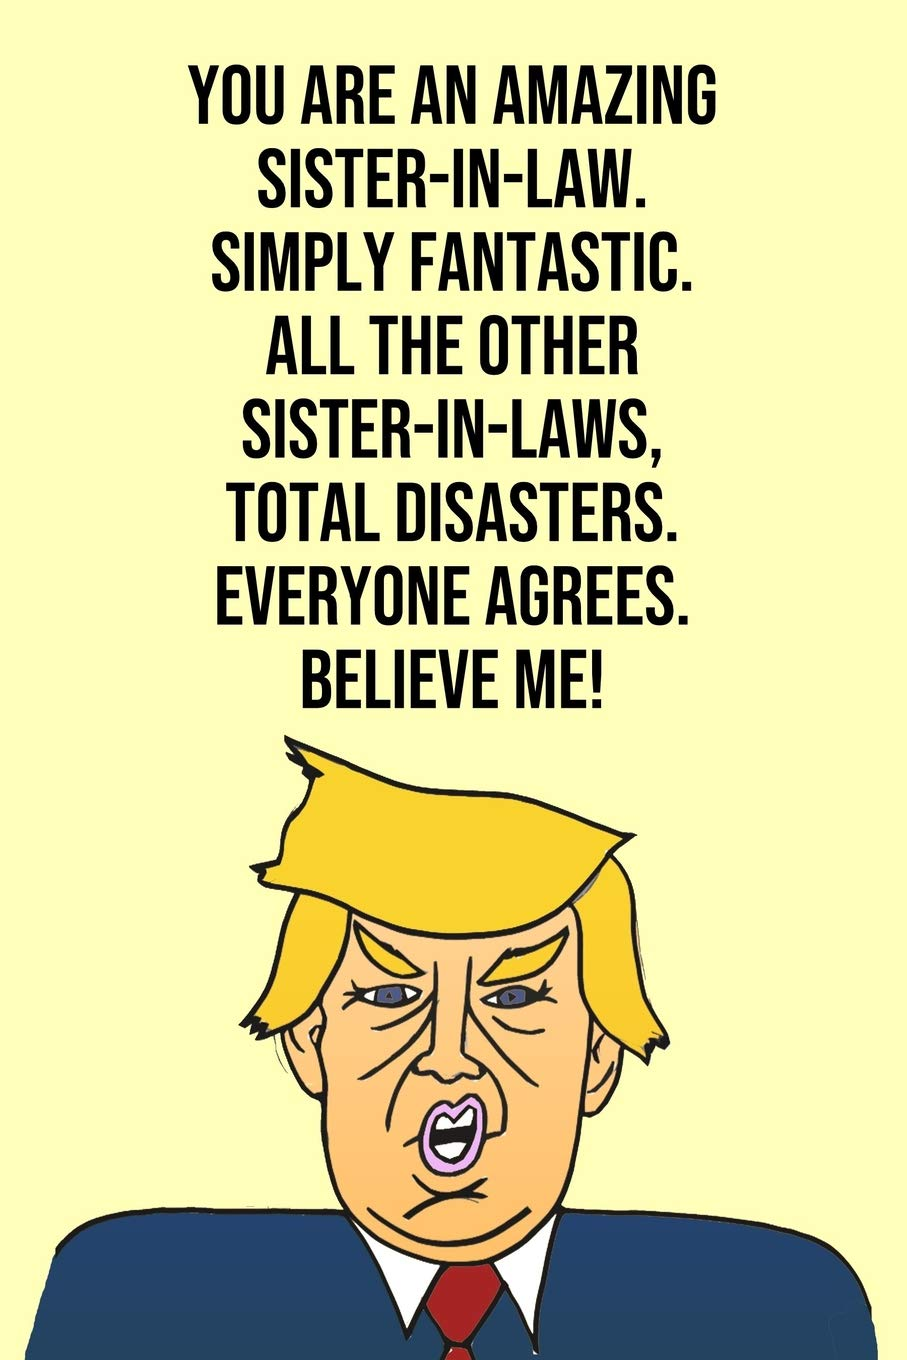 You Are An Amazing Sister In Law Simply Fantastic All The Other Sister In Laws Total Disasters Everyone Agree Believe Me Donald Trump 110 Page Blank Sister In Law Gag Gift Idea Better Than A Card Press Laugh House